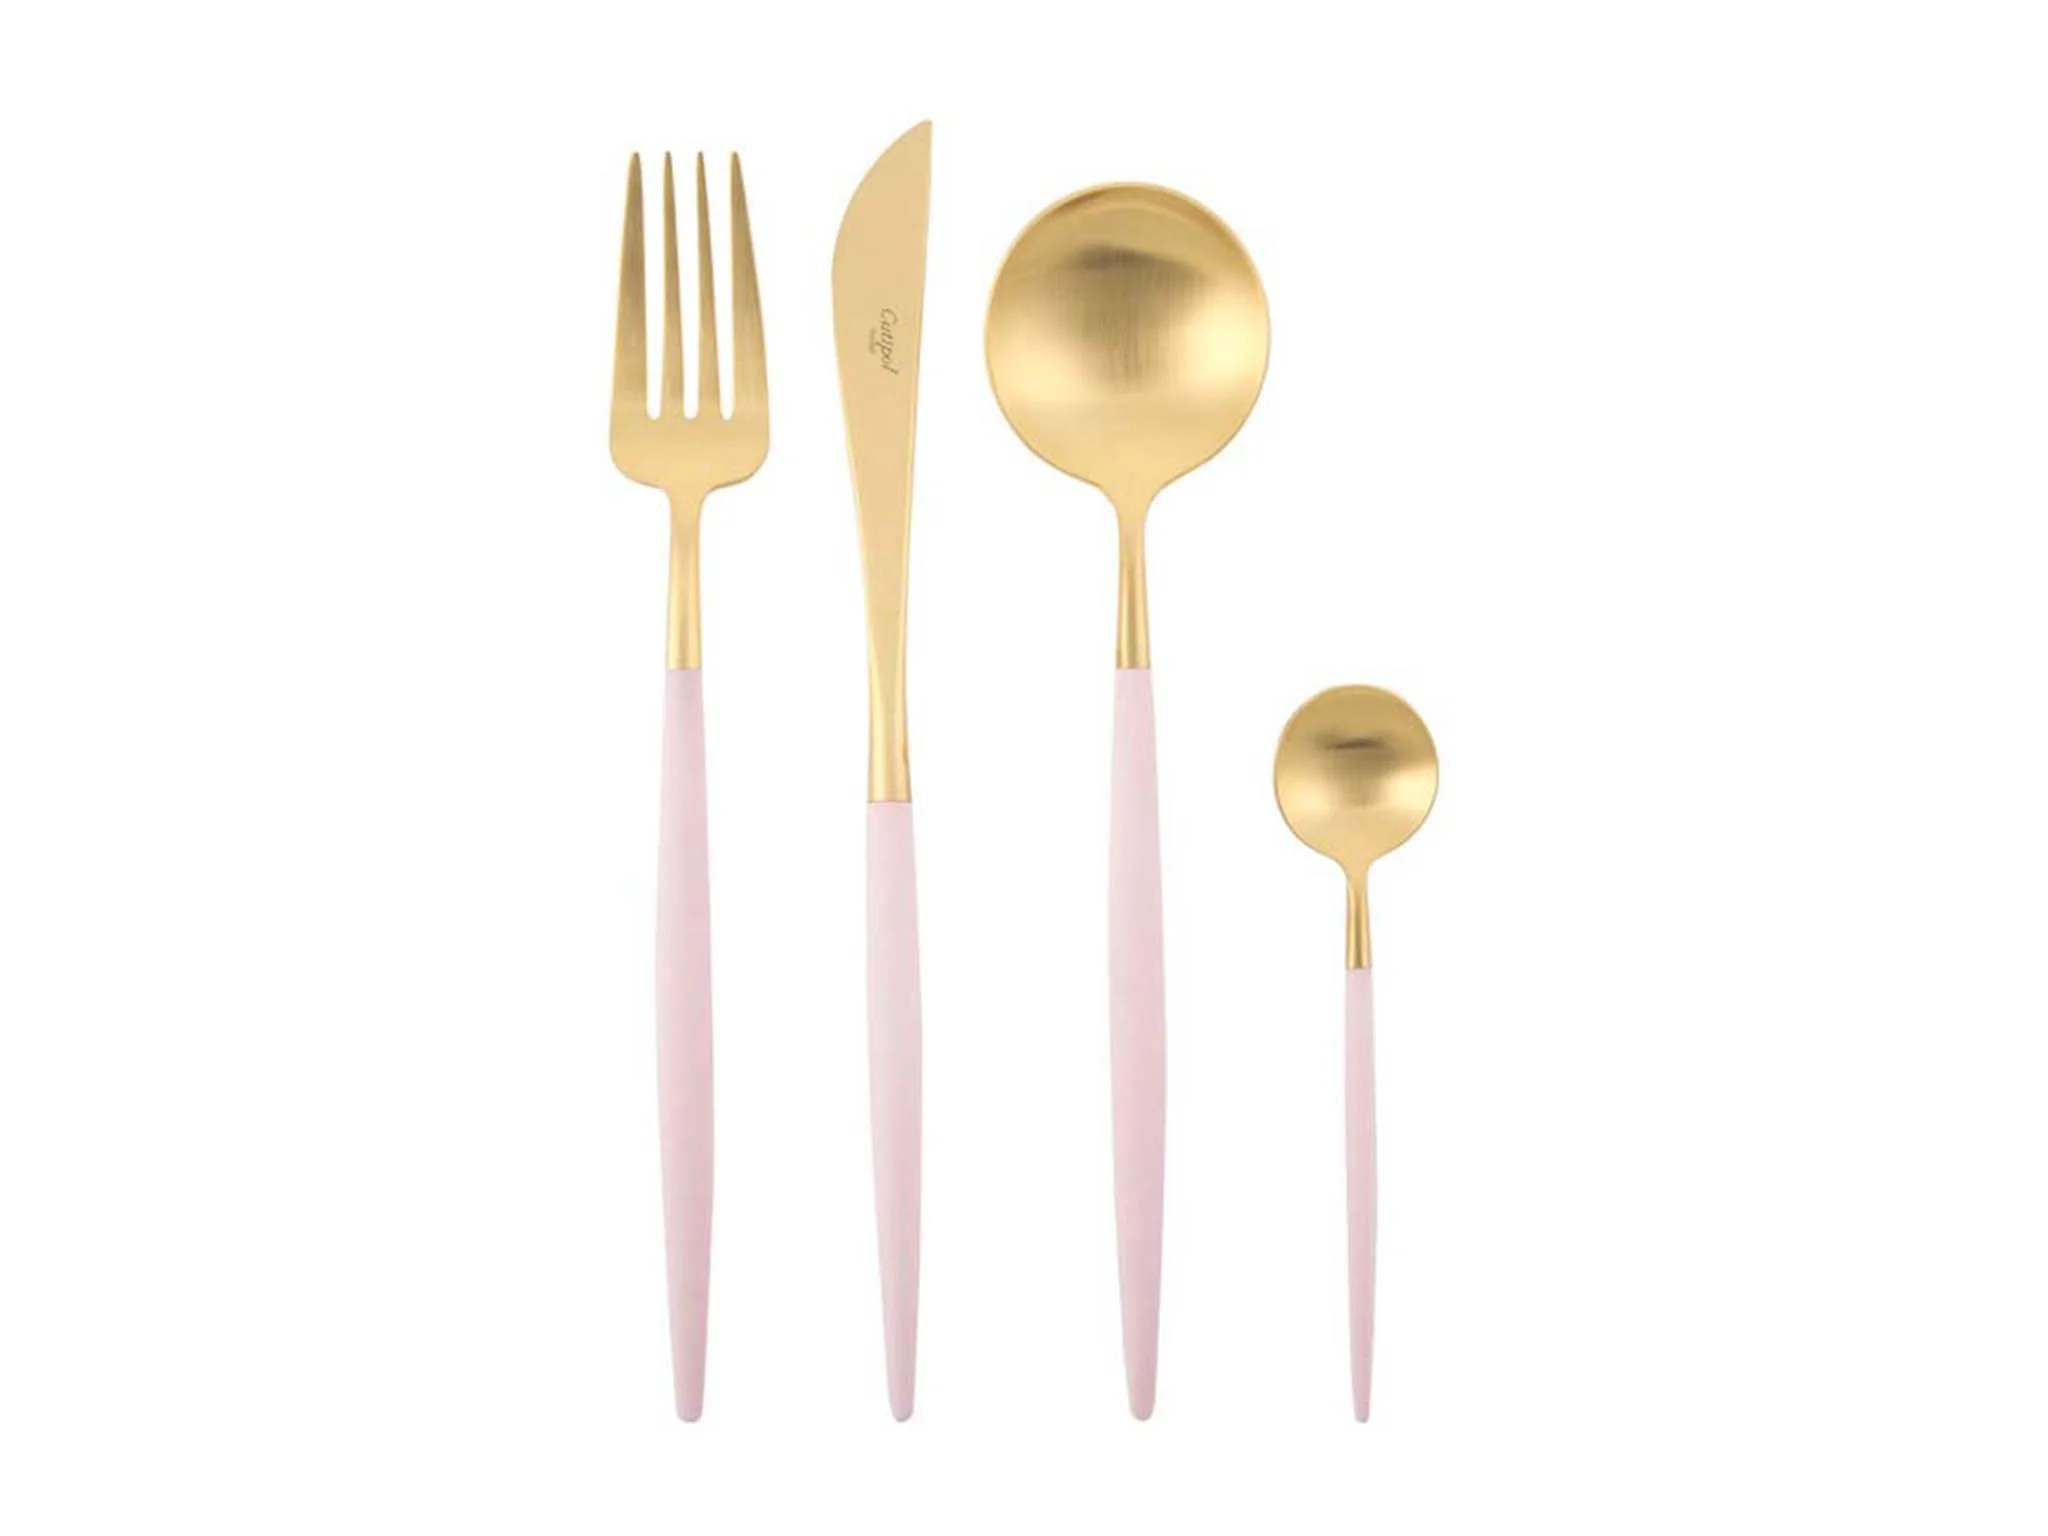 Best Cutlery Set 2020 Gold Black And Stainless Steel Designs The Independent